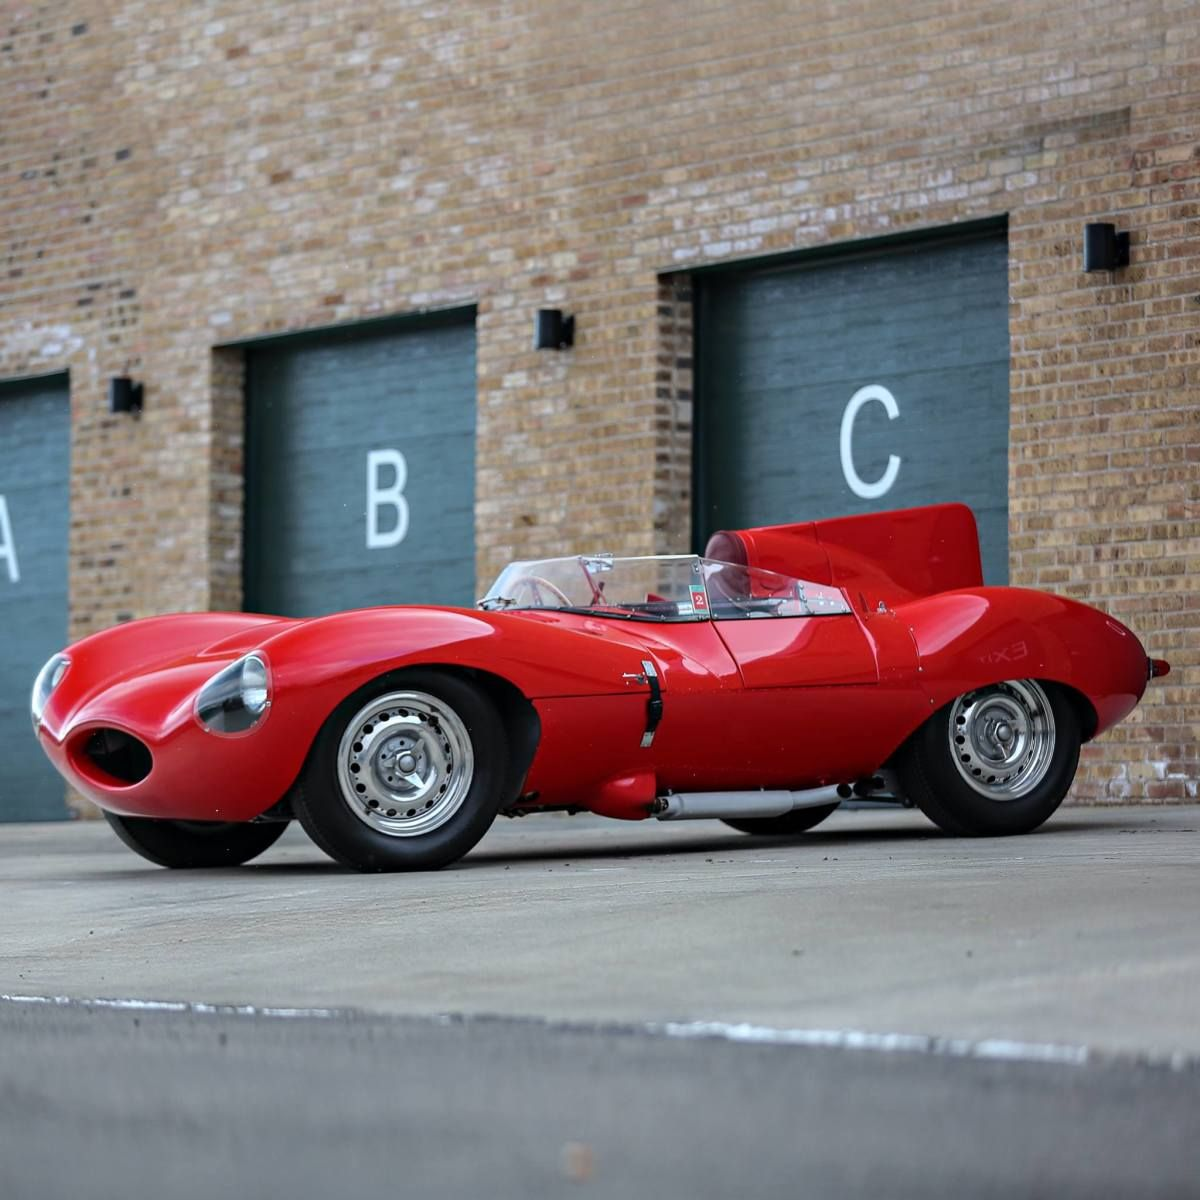 Jaguar Sport Car Red: A Rare 1956 Red Jaguar D-Type Is Going Up For Sale At